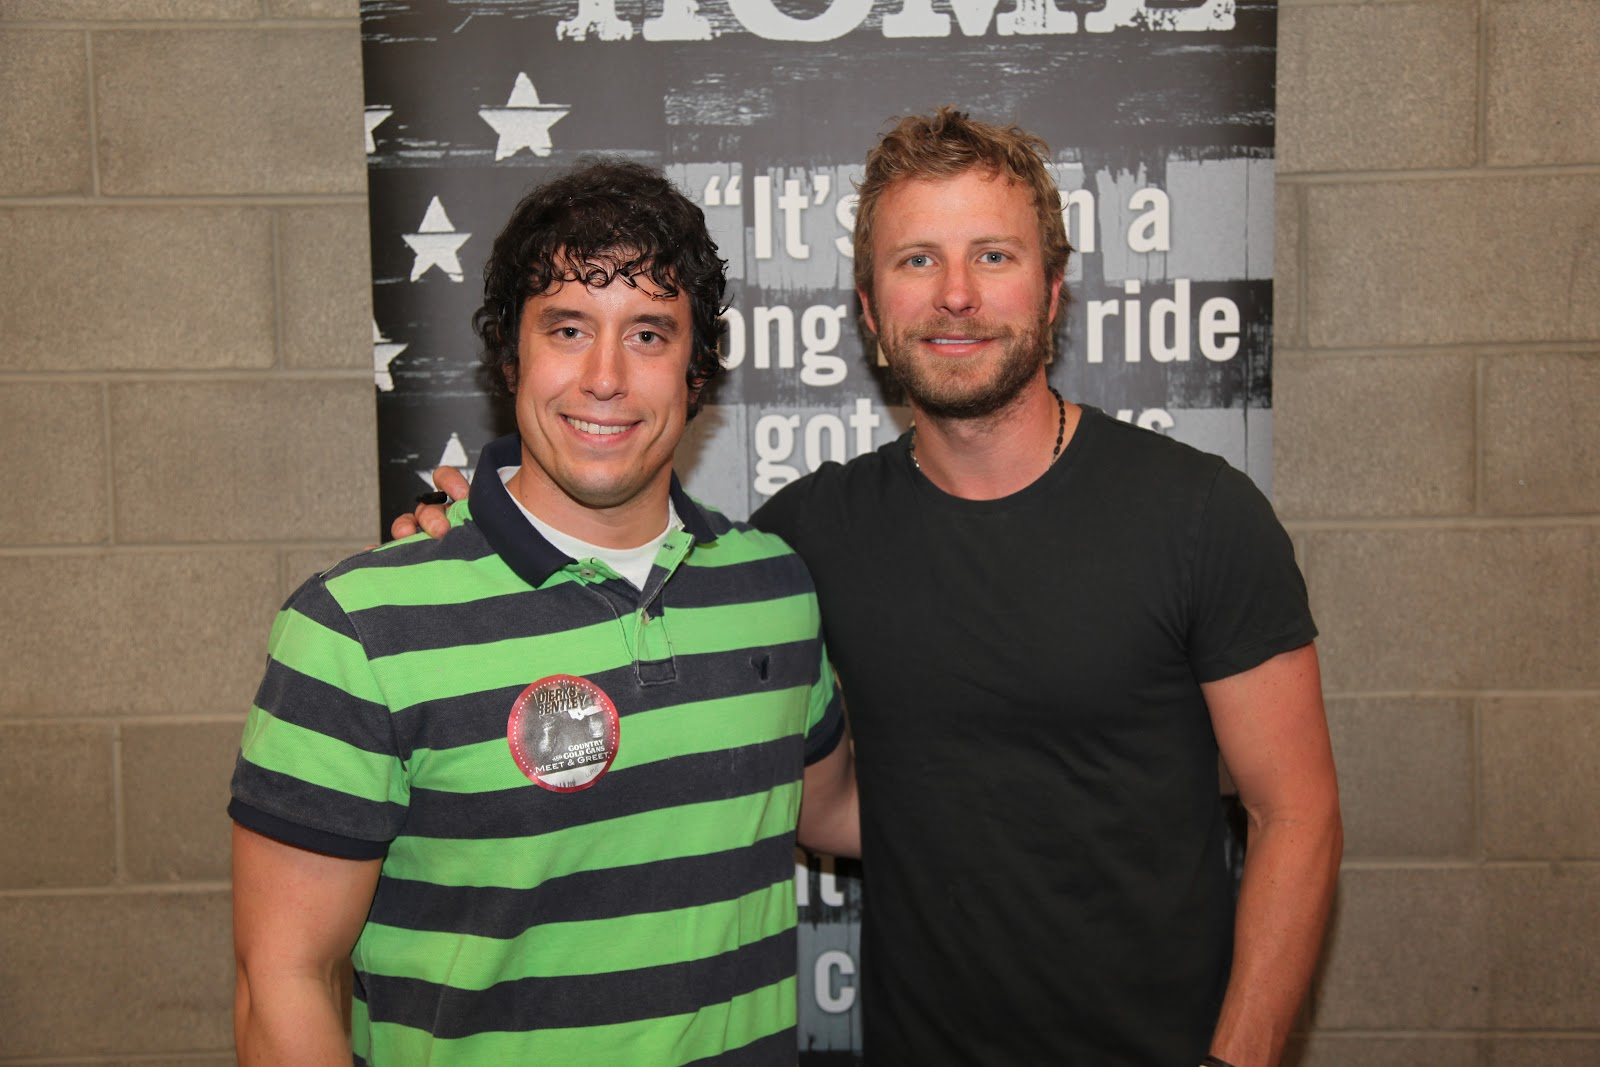 I met Dierks Bentley in April of 2012.